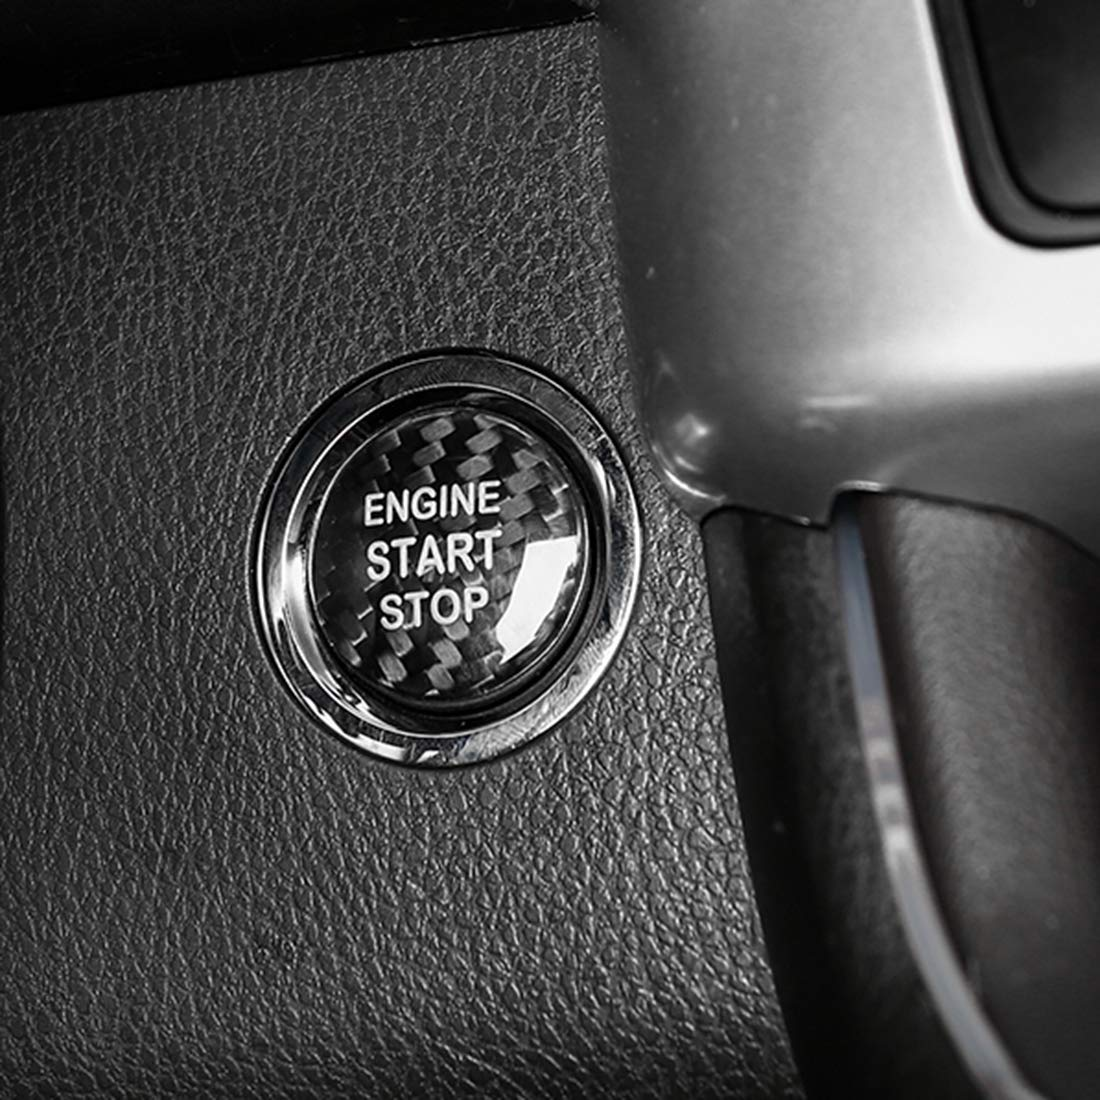 Engine Start Stop Push Button Cover Push to Start Button Frame Decal Sticker Carbon Fiber fit for Chevrolet Camaro Black